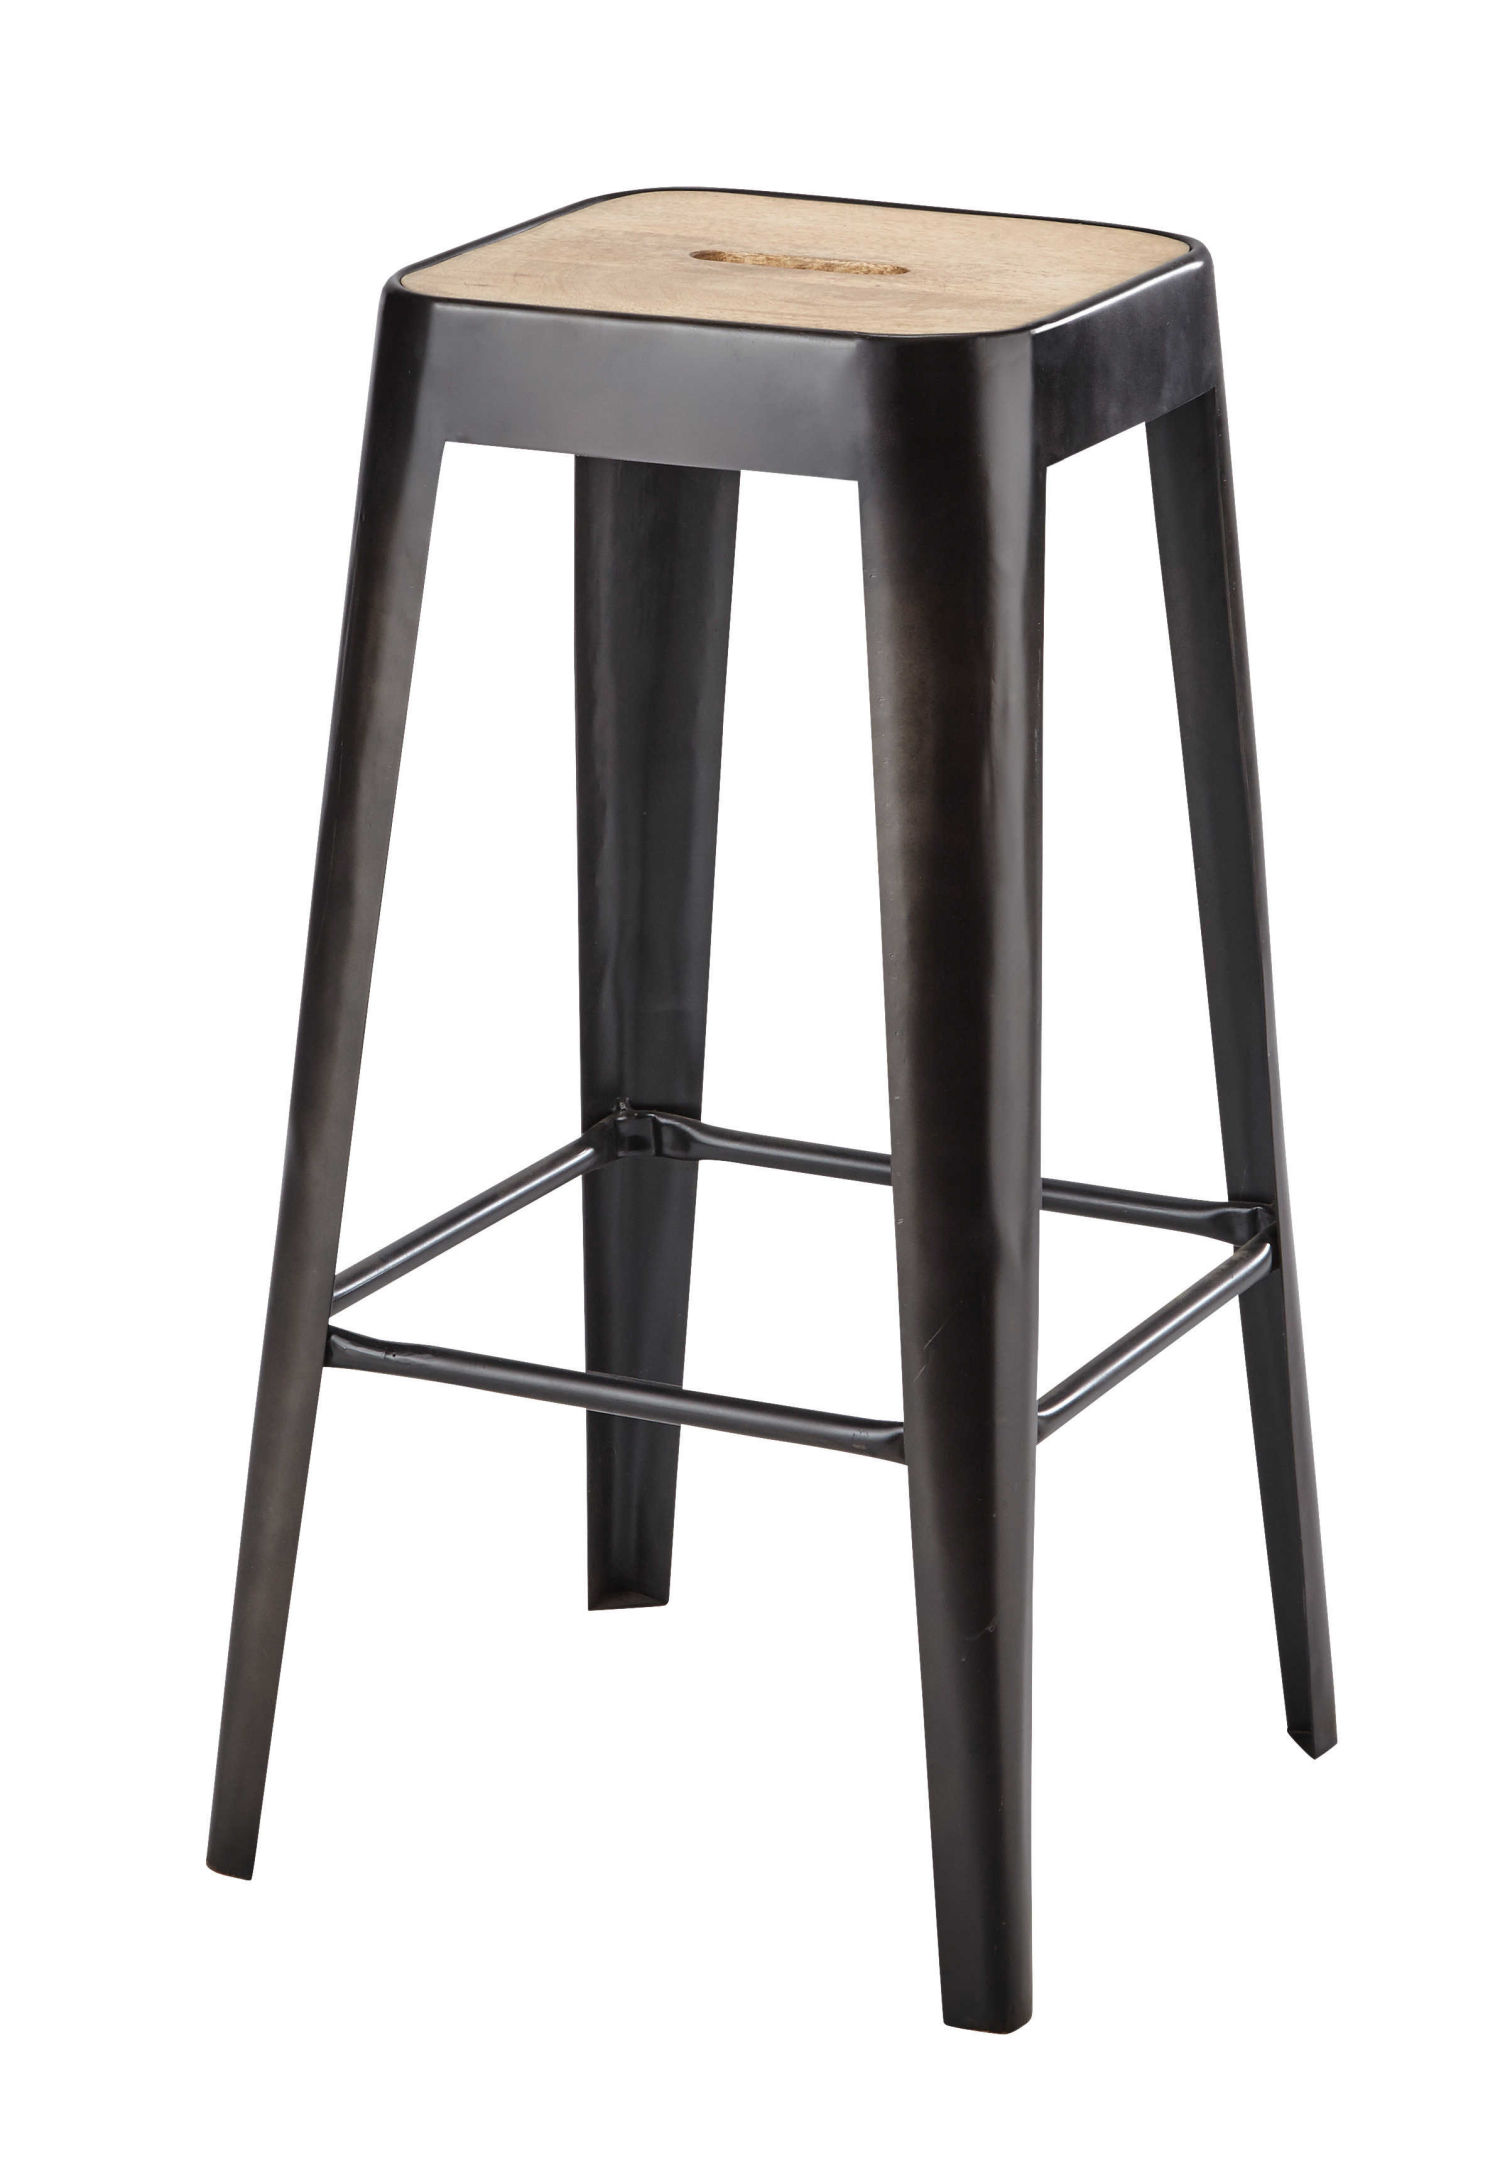 tabouret de bar indus en manguier et m tal maisons du monde. Black Bedroom Furniture Sets. Home Design Ideas